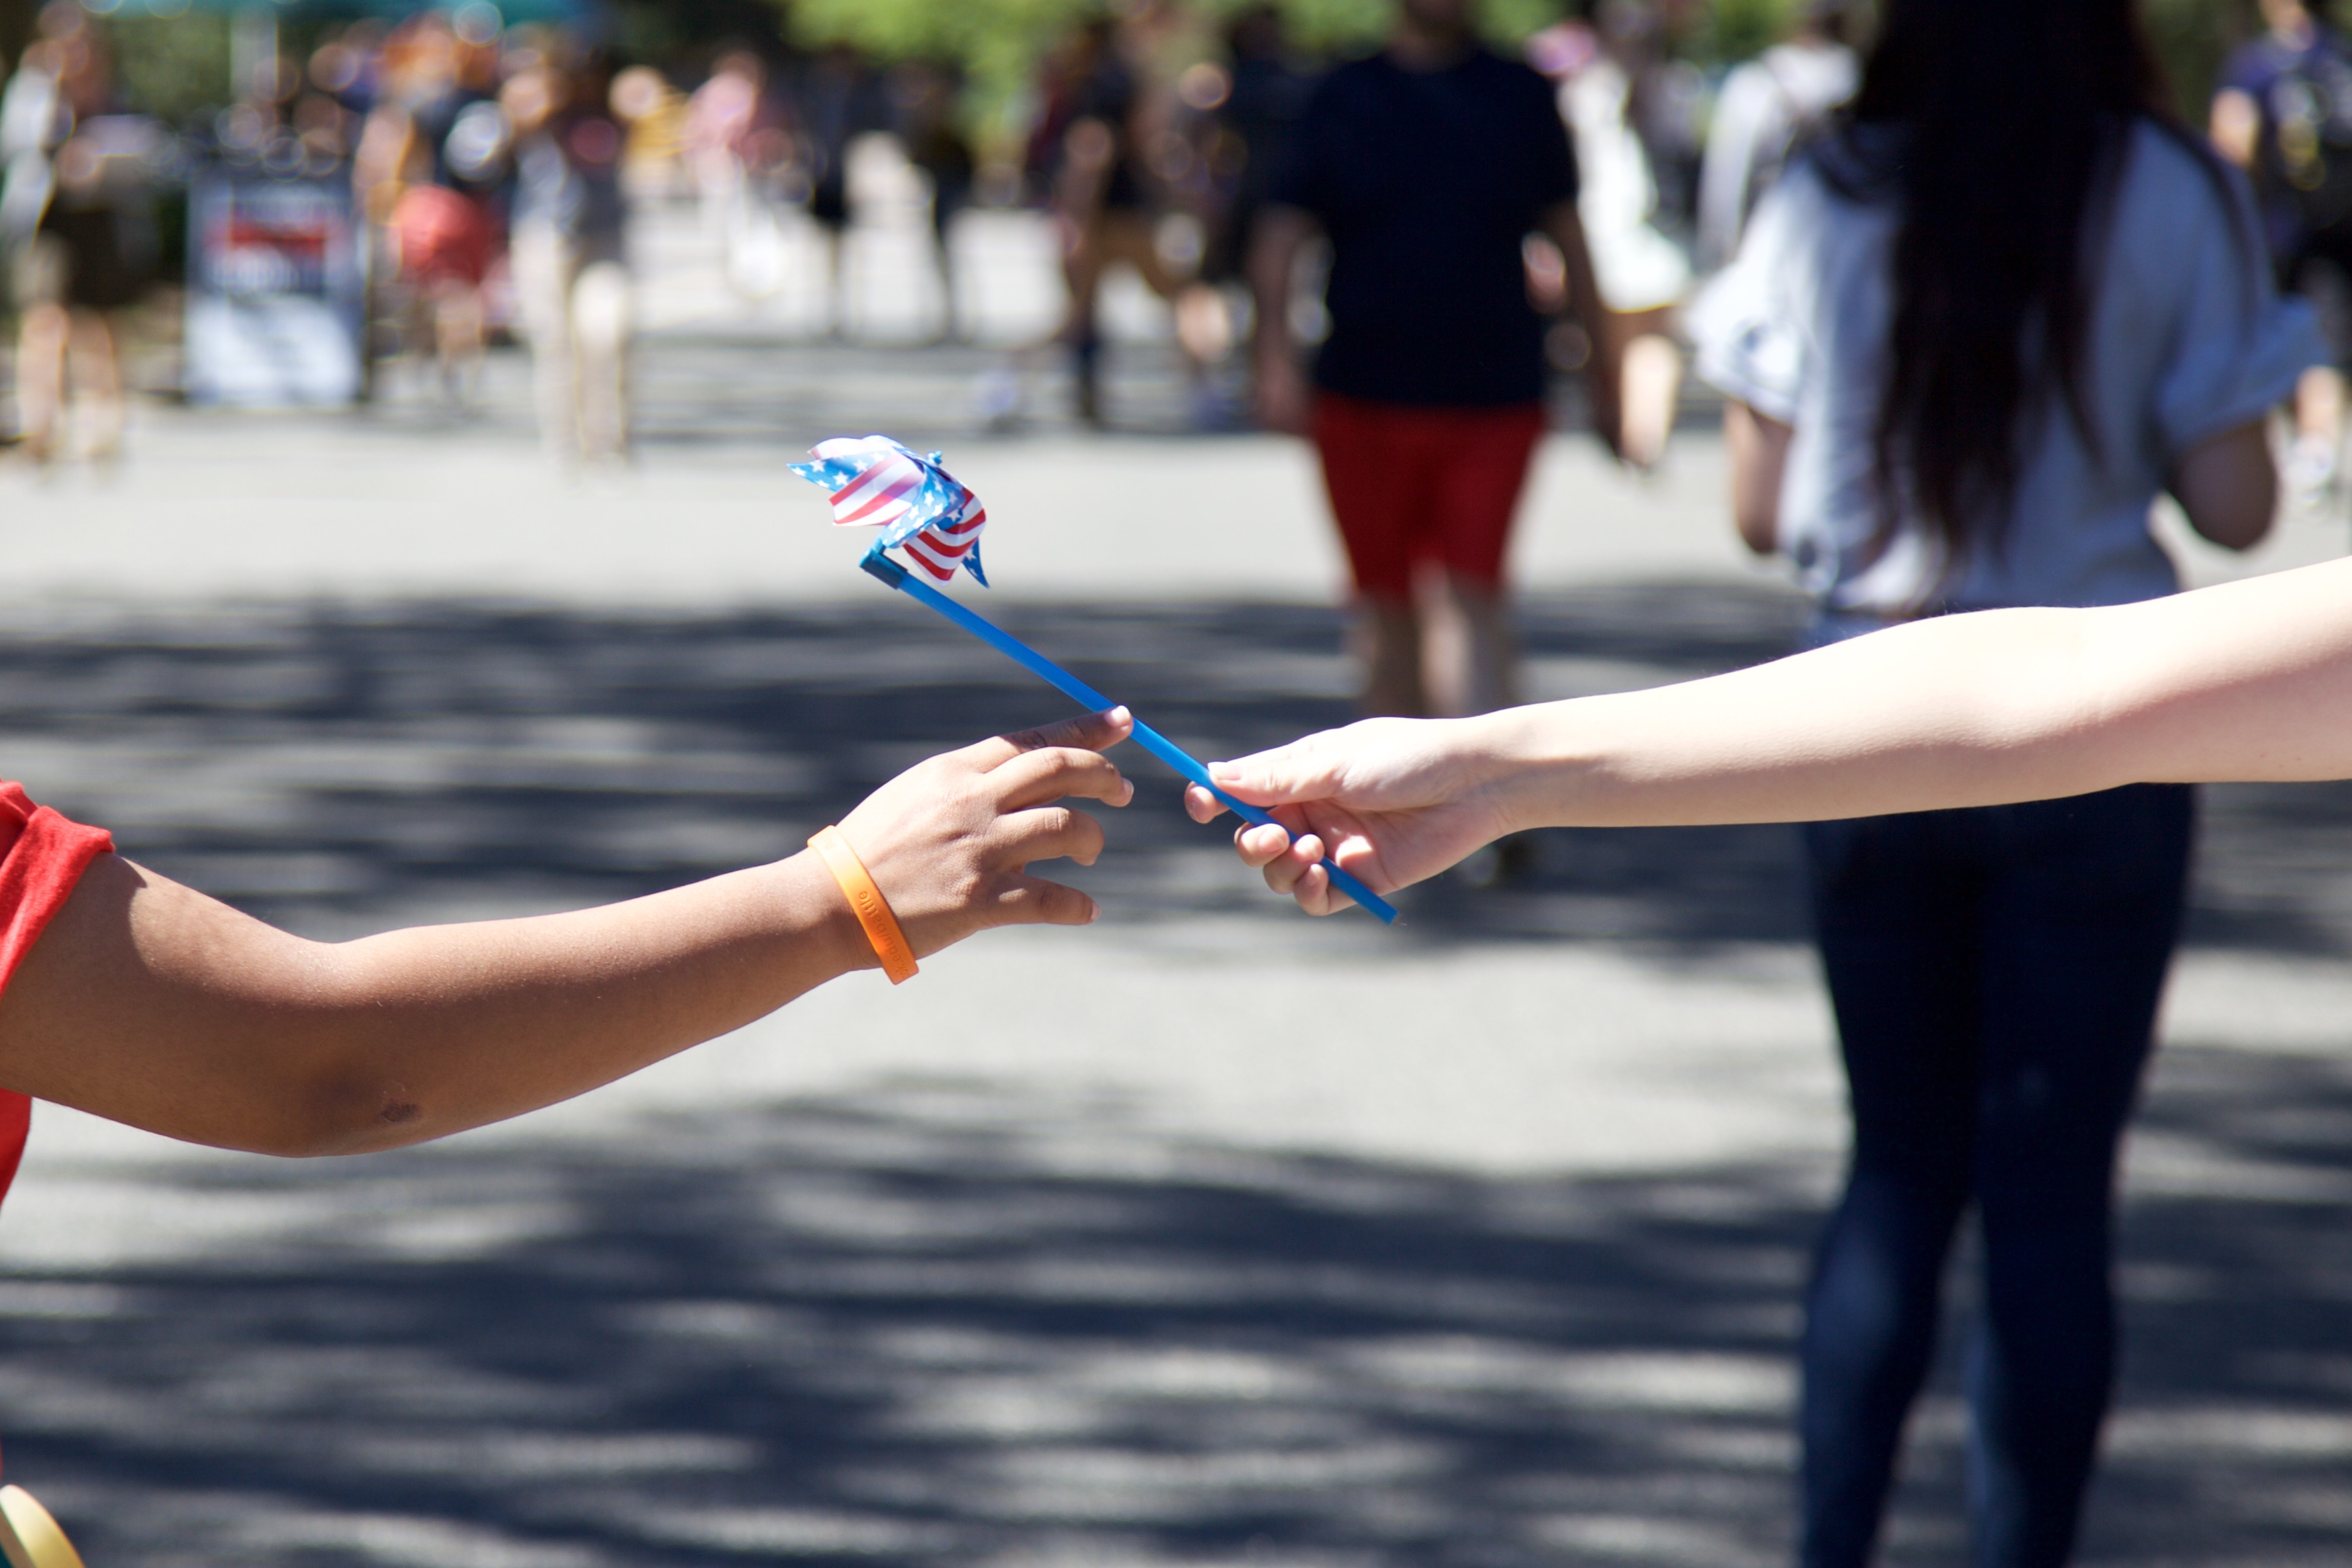 Students are handed American flag pinwheels to commemorate the men and women who died in the 9/11 terror attacks. ARACELY JIMENEZ/THE STATESMAN